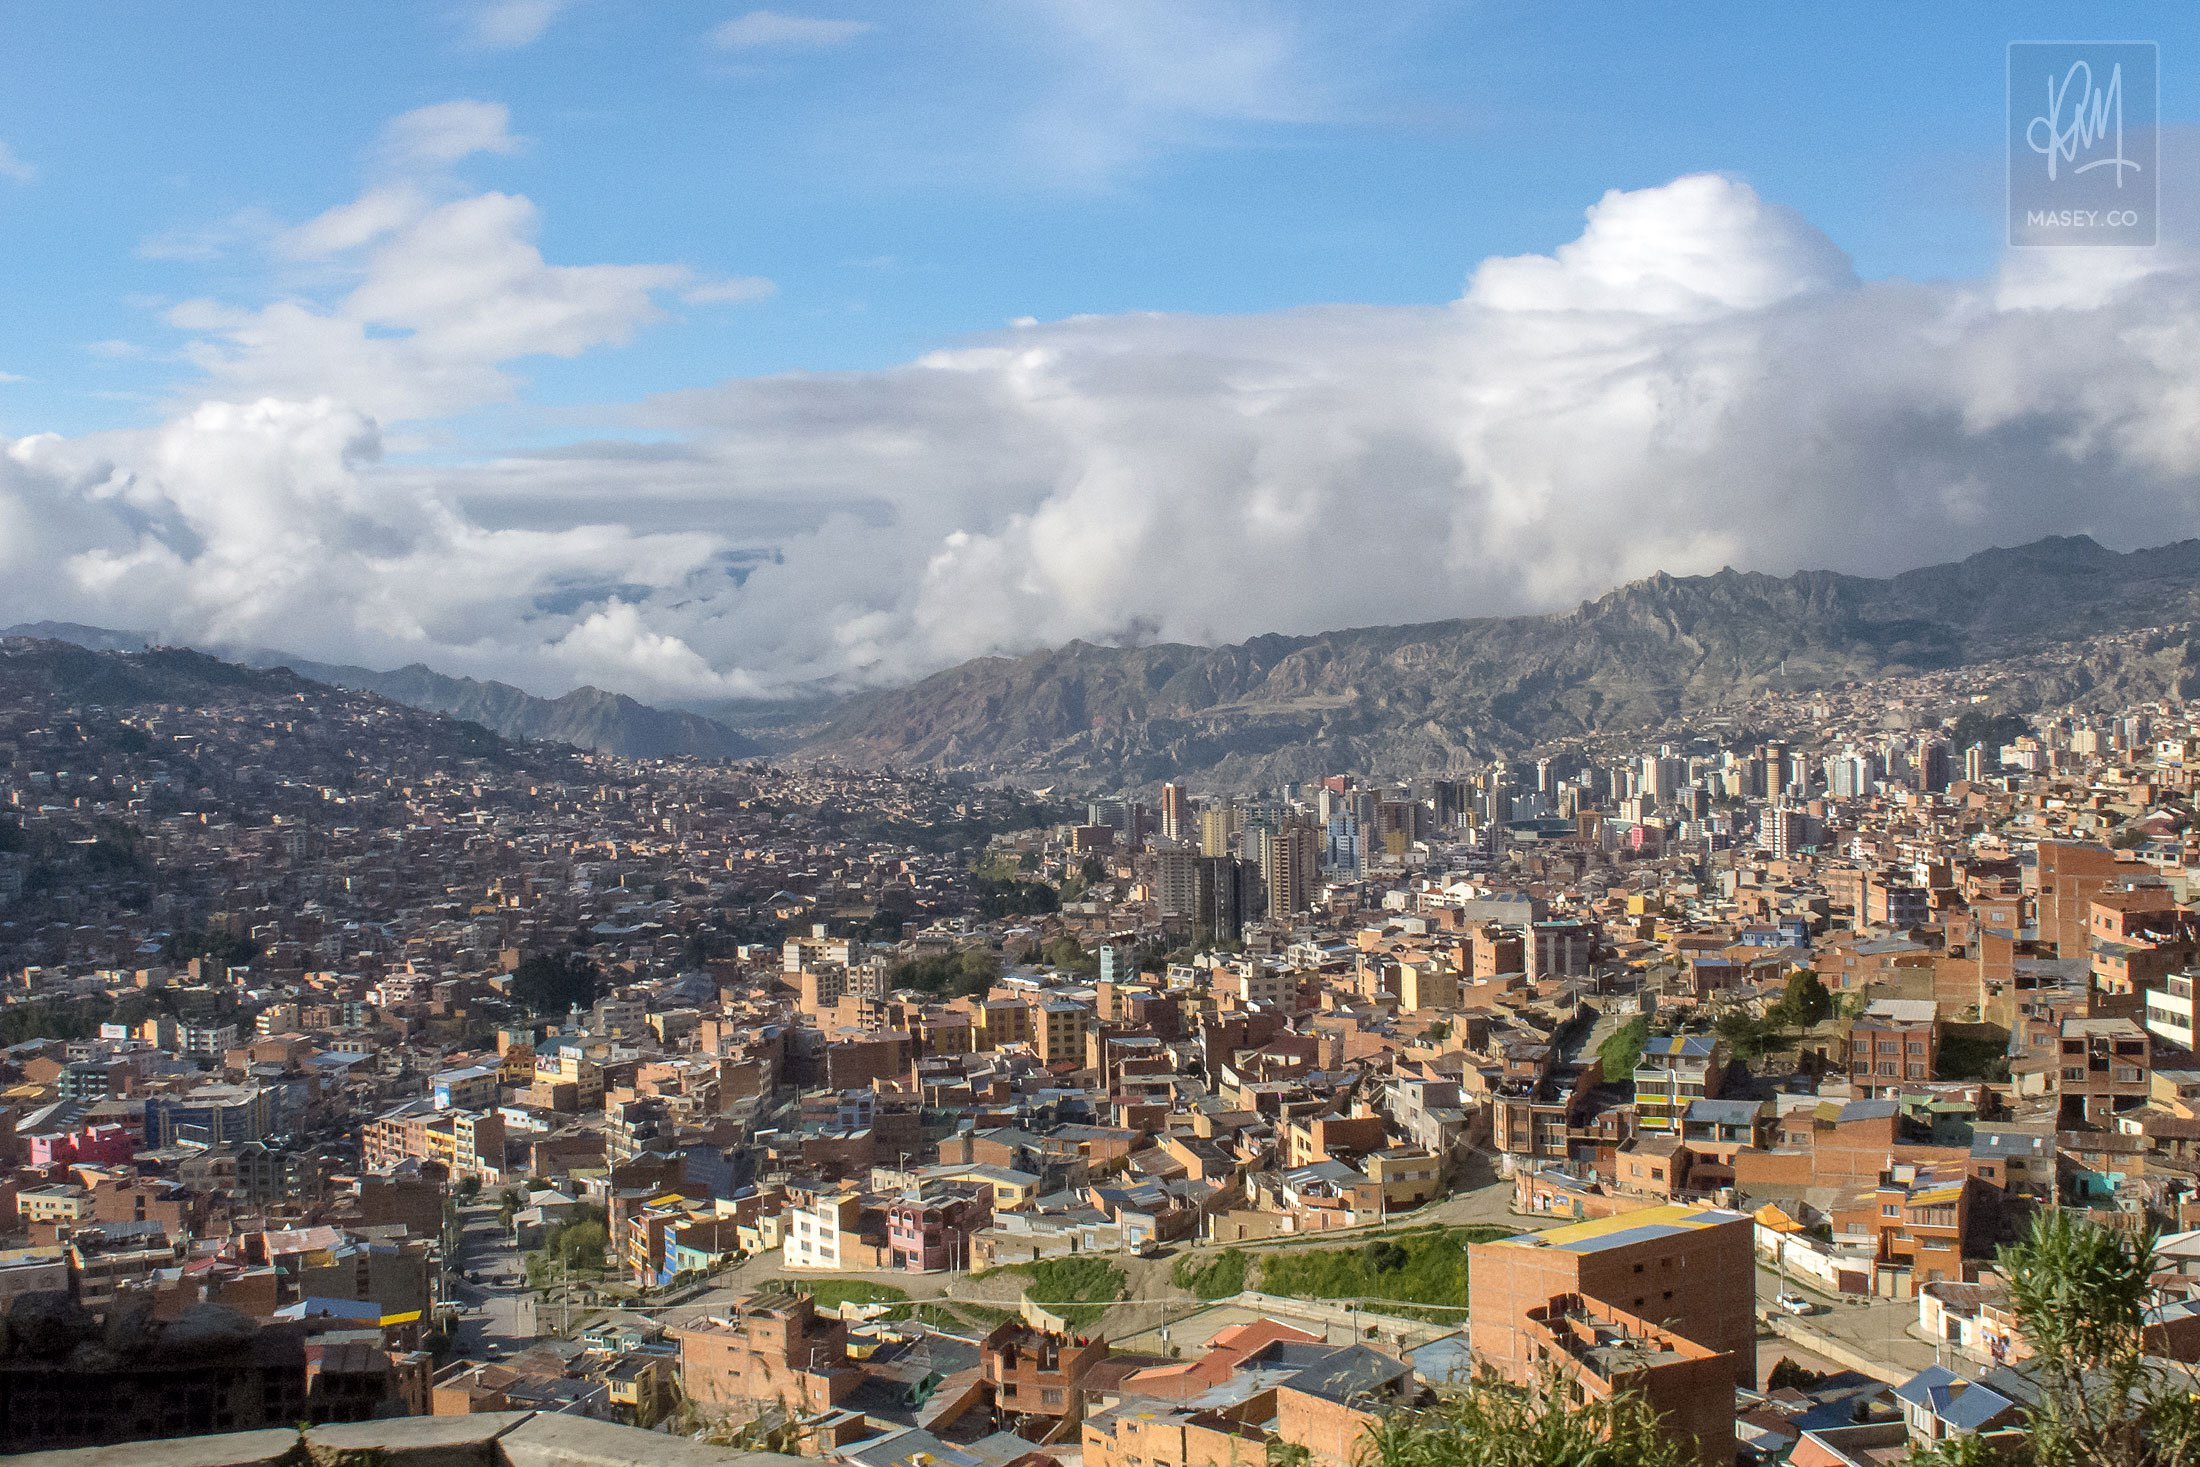 Brick housing for as far as the eye can see across La Paz